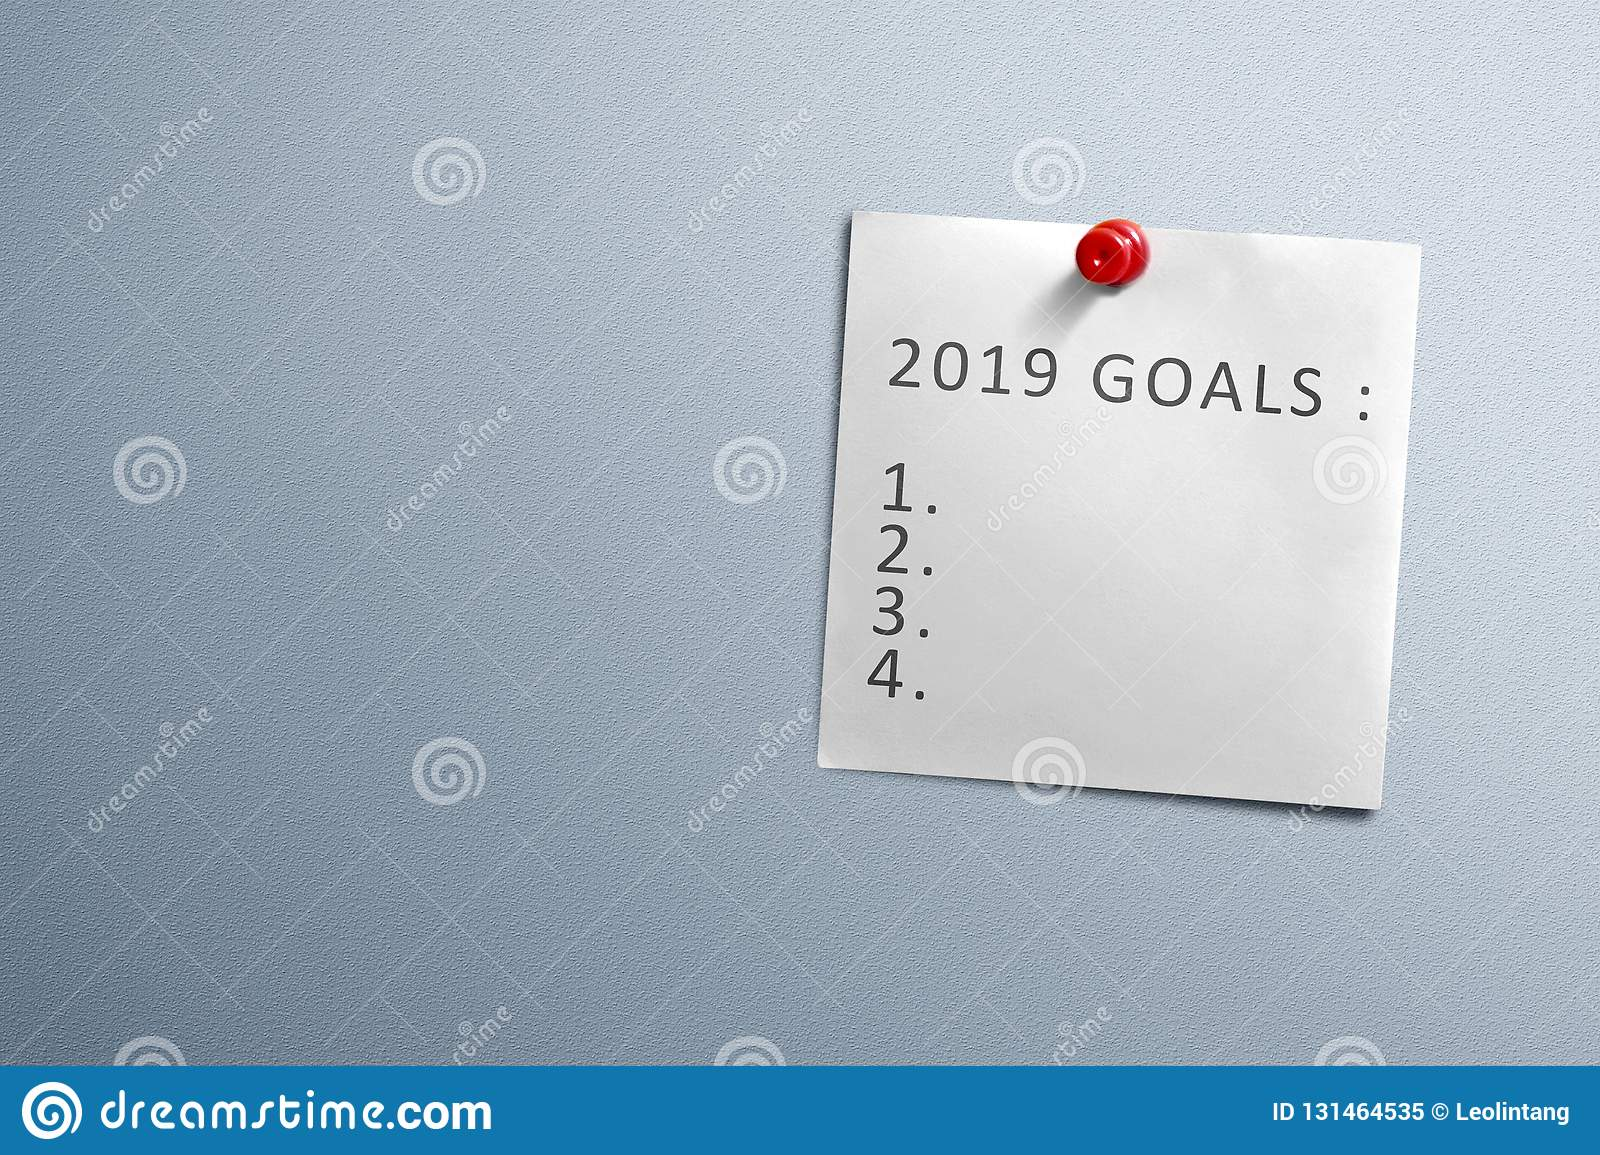 List For 2019 Goals In Note Paper Hanging With Pin On The Wall Stock Image  - Image of winter, number: 131464535